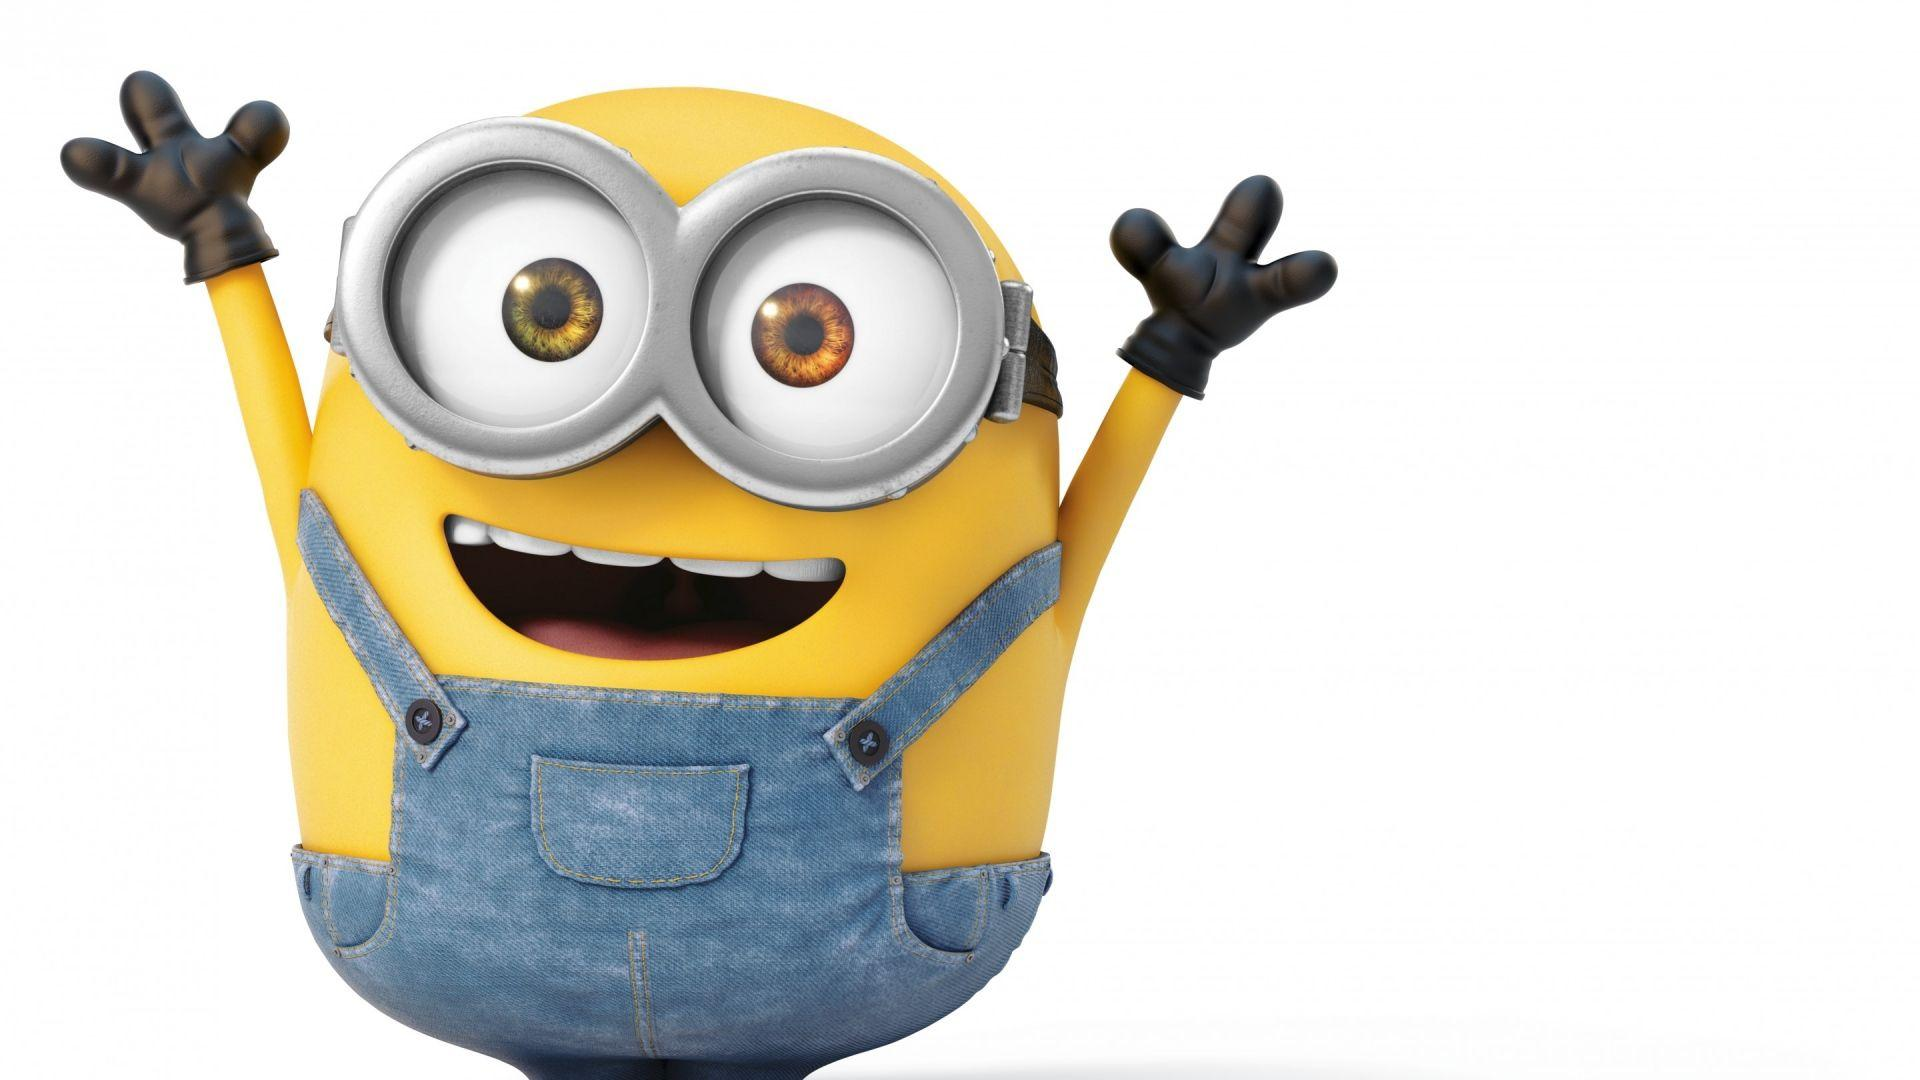 Hd Wallpapers Minions Wallpaper Cave